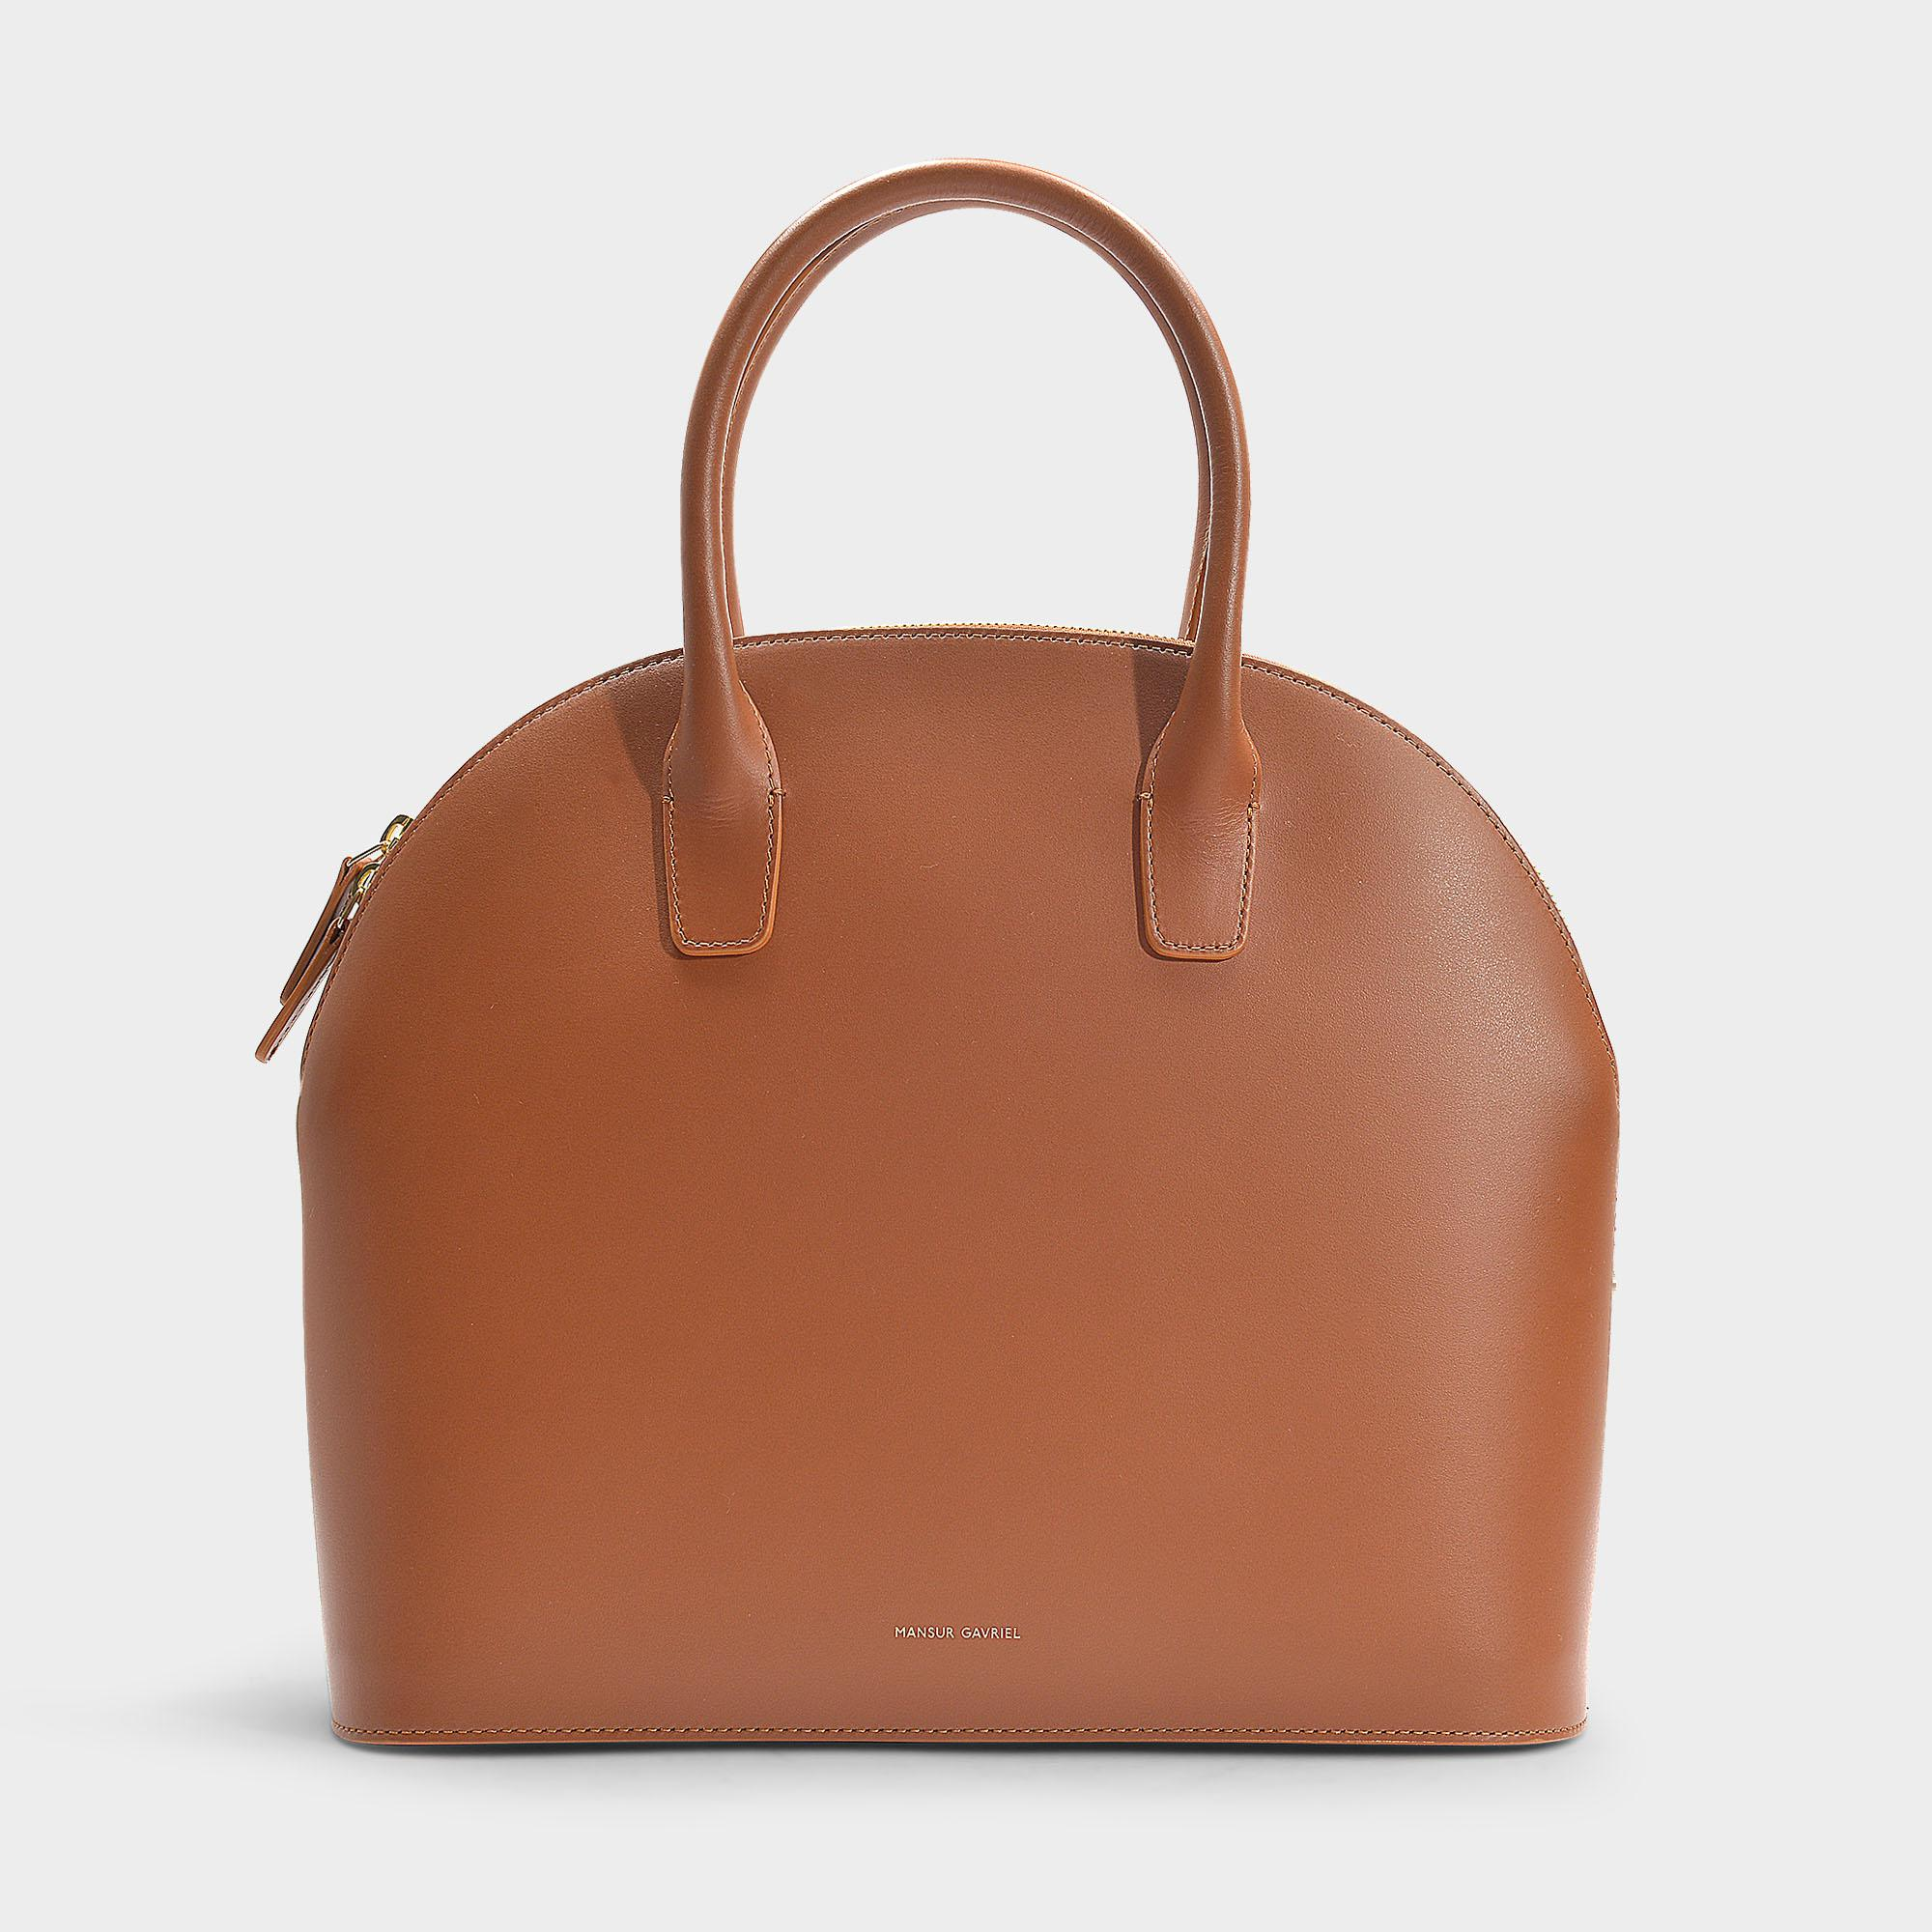 e78408aeac Mansur Gavriel Top Handle Rounded Bag In Brown Calfskin in Brown - Lyst